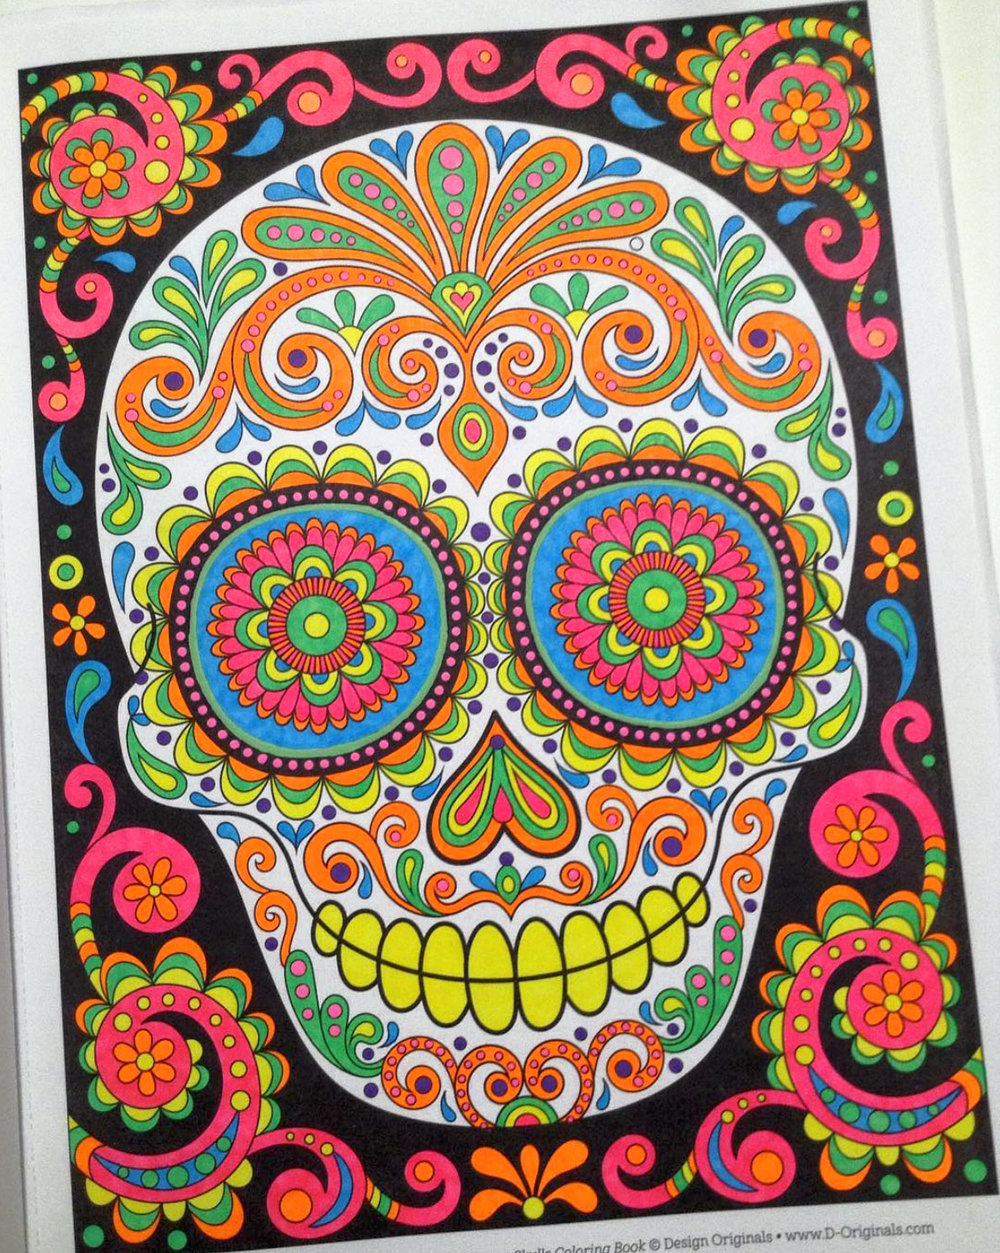 sugar-skull-coloring-page-by-Thaneeya-McArdle-colored-by-TammyM.jpg